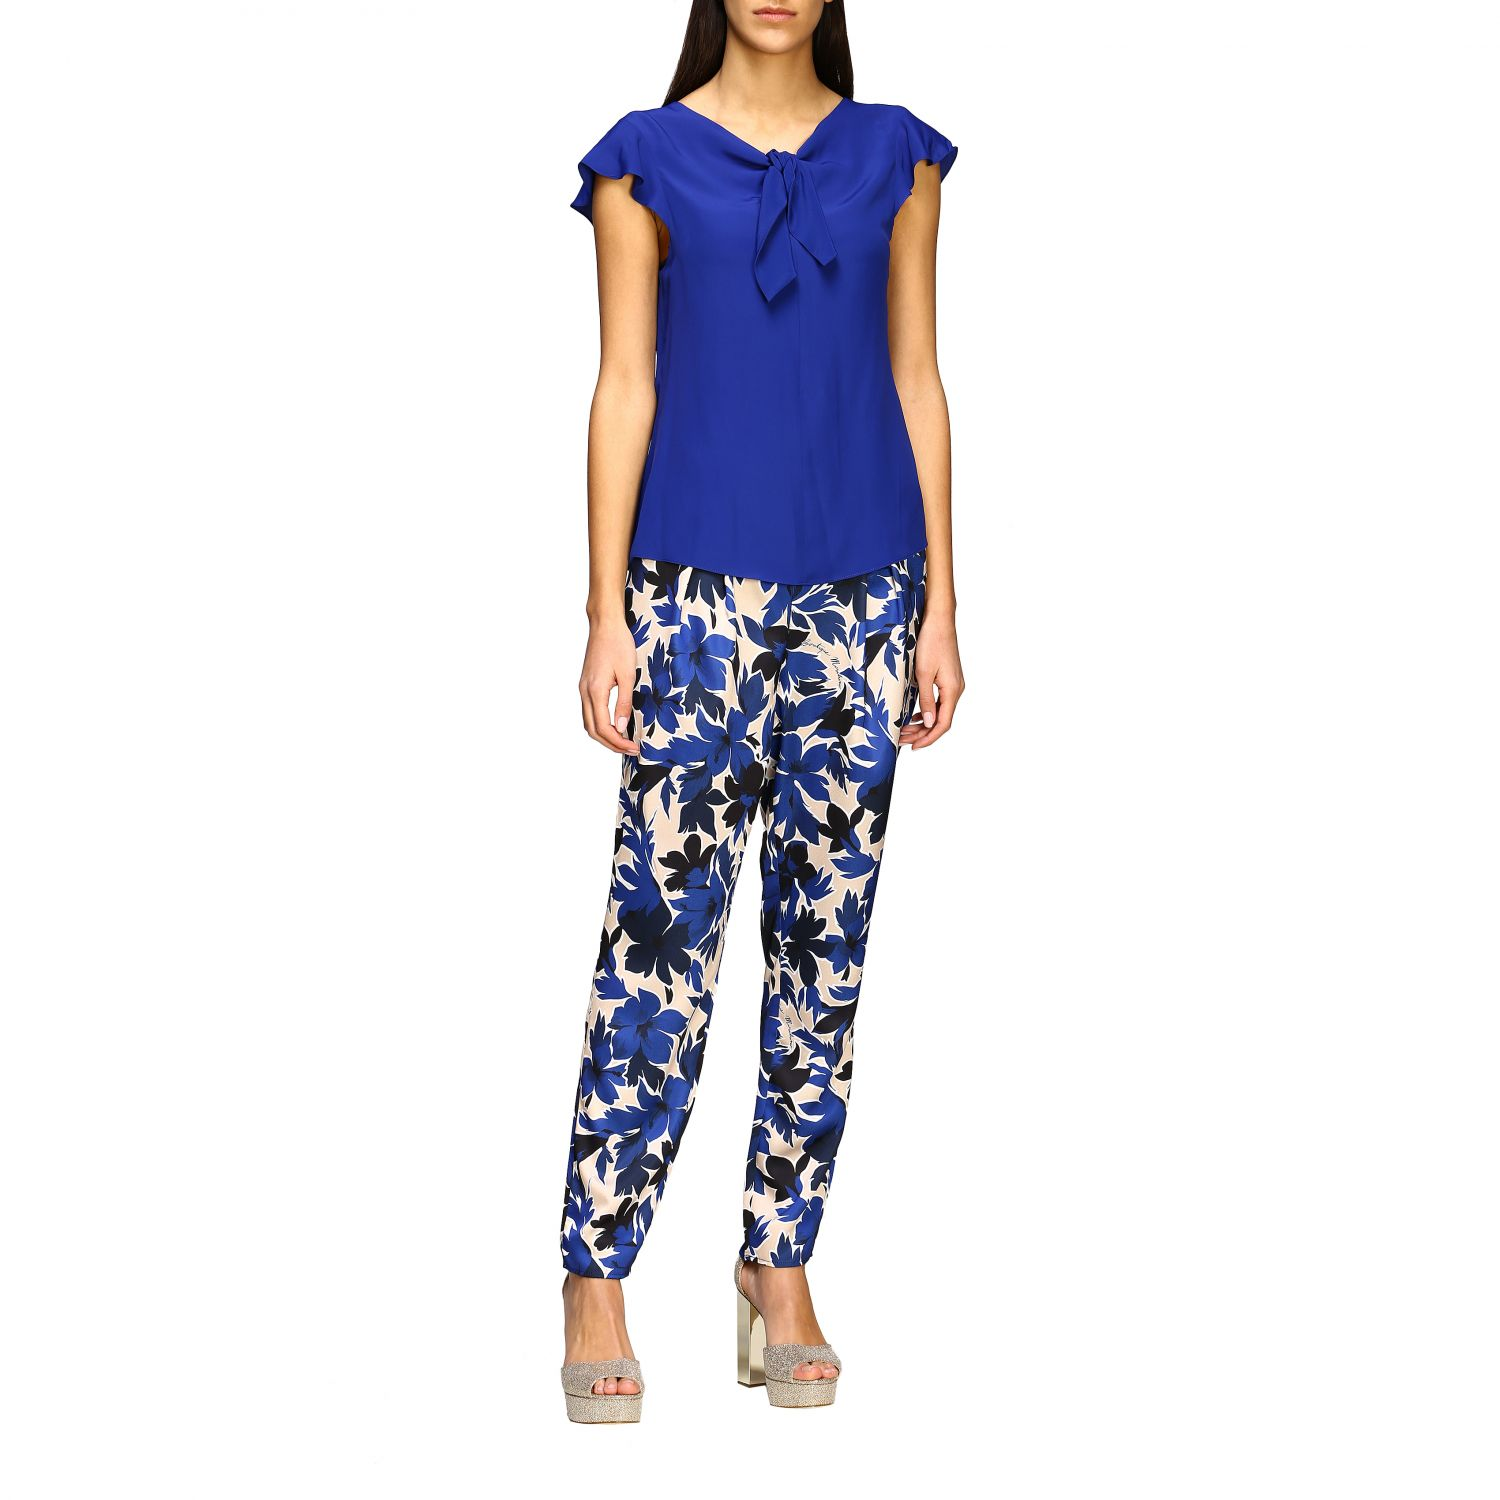 Top Boutique Moschino: Top women Boutique Moschino blue 2